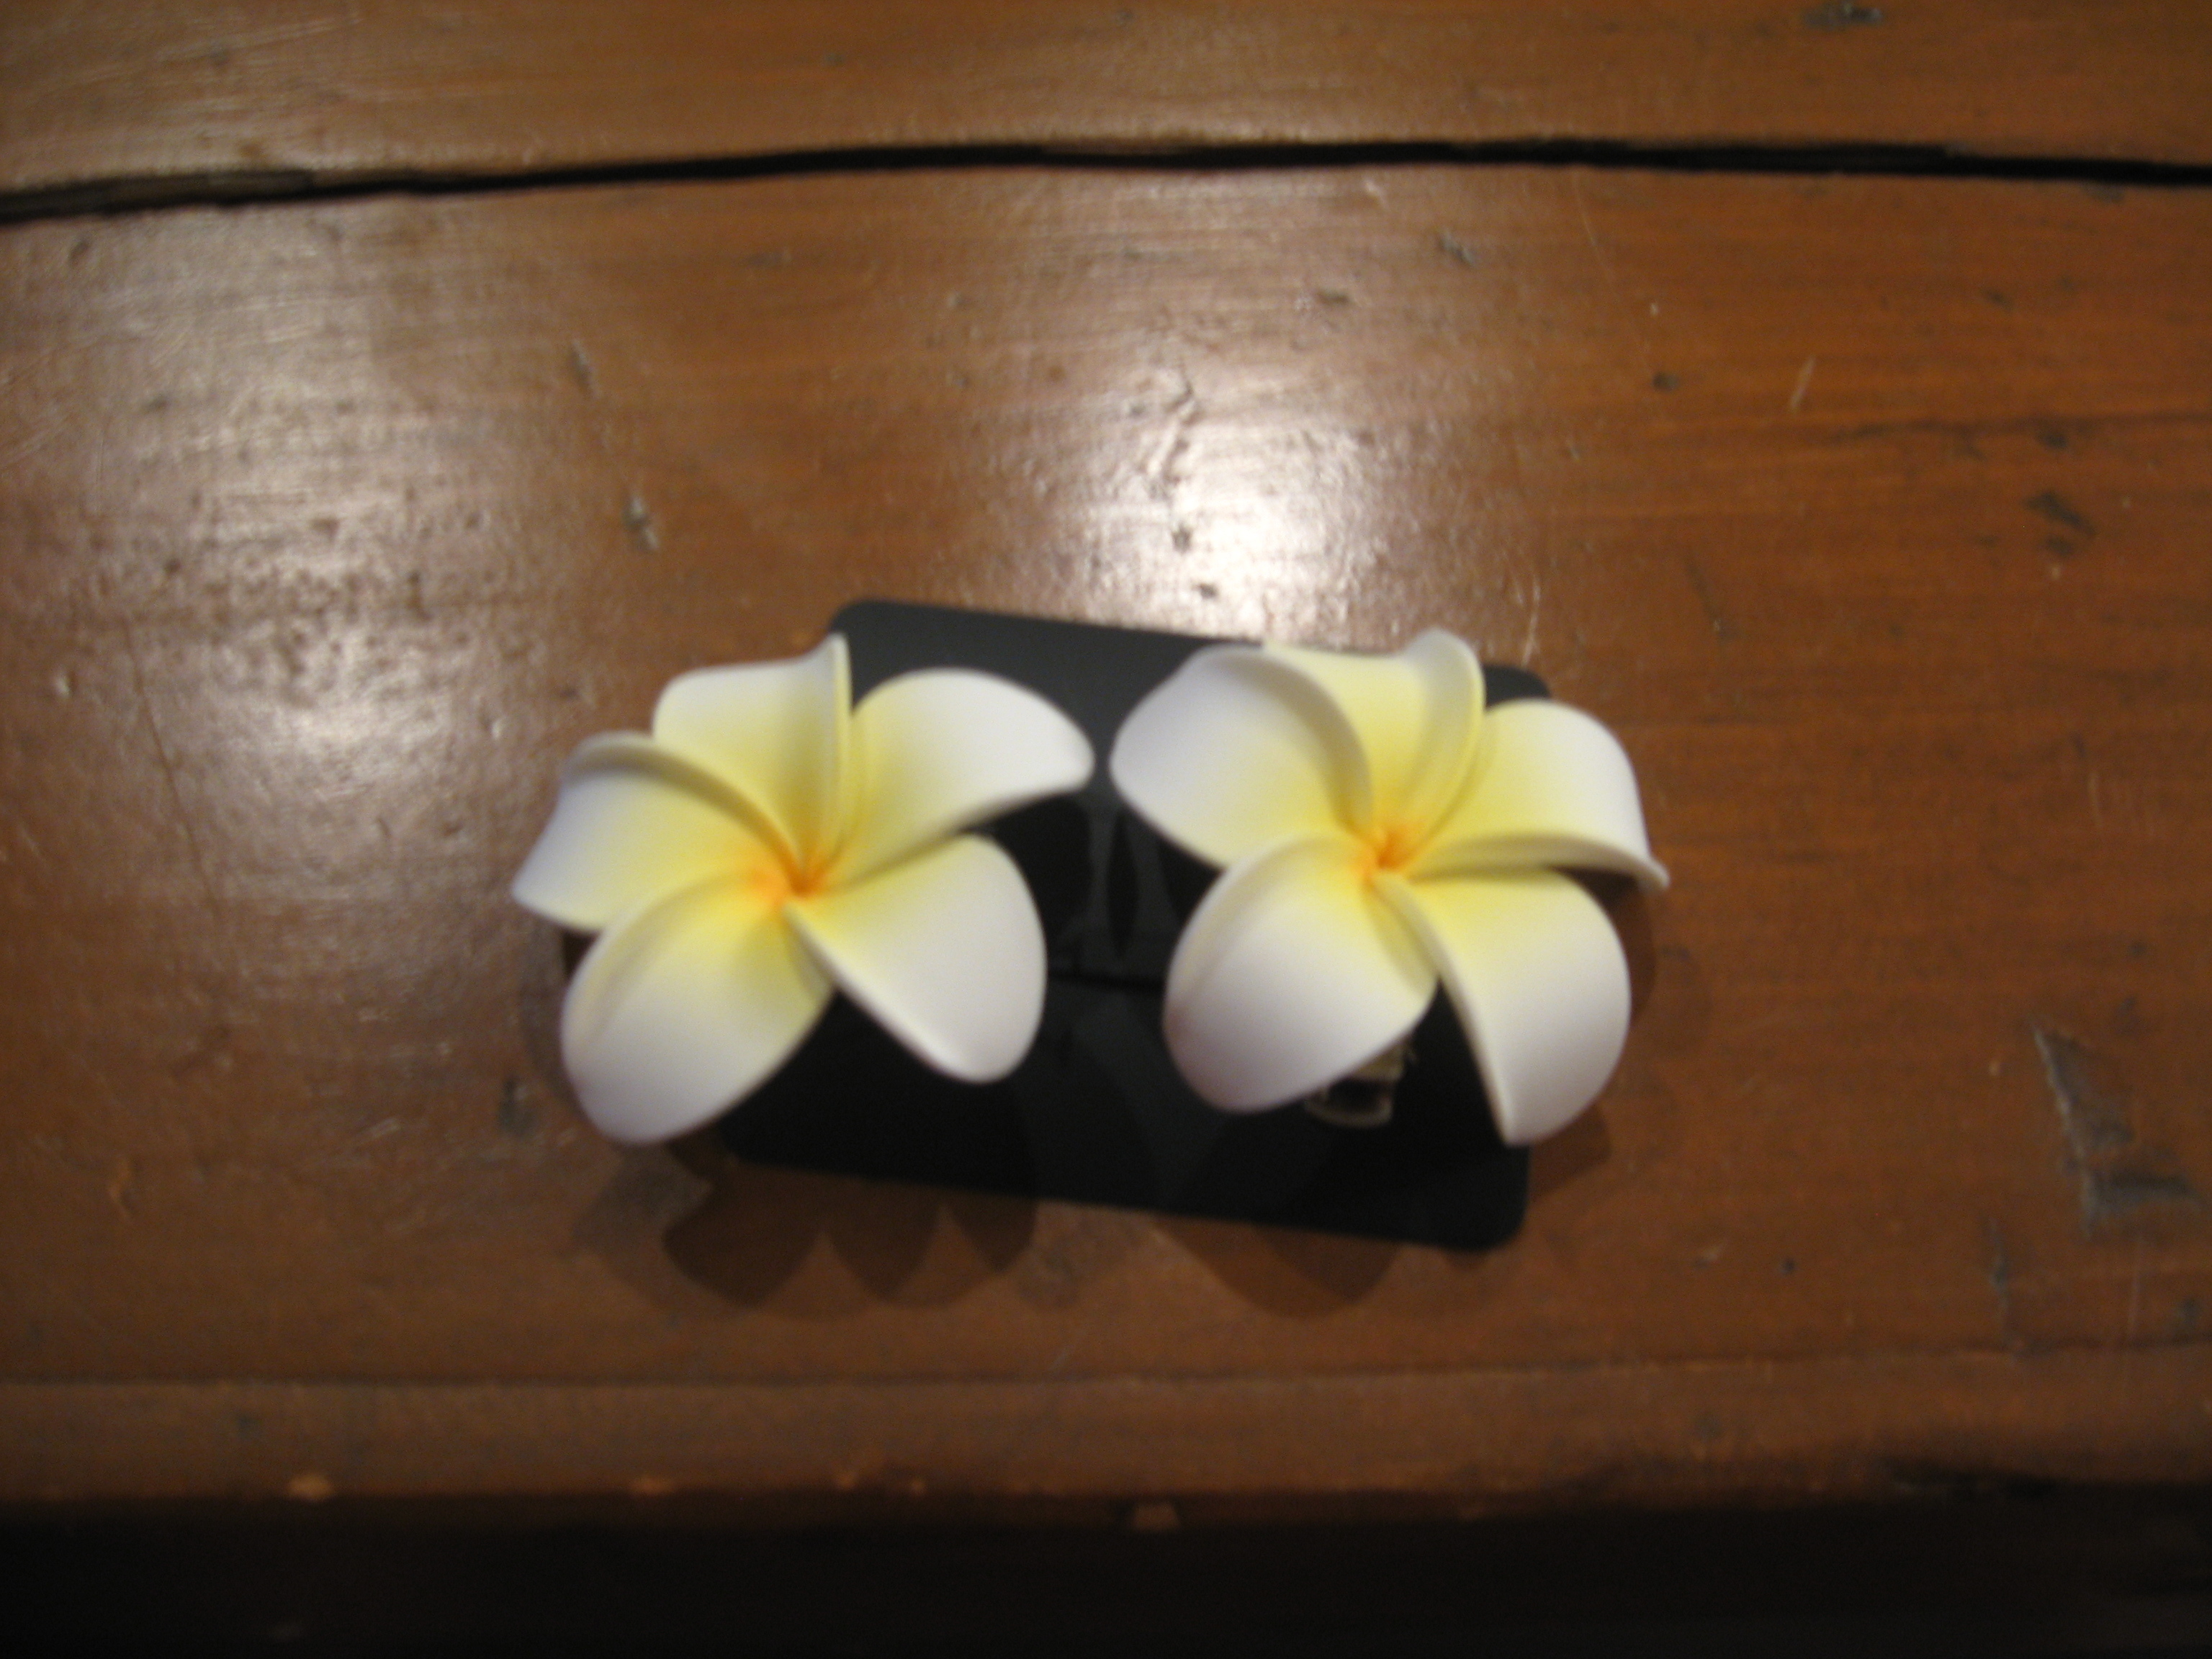 Beauty, Flowers & Decor, Flower, Hair, Plumeria, Clip